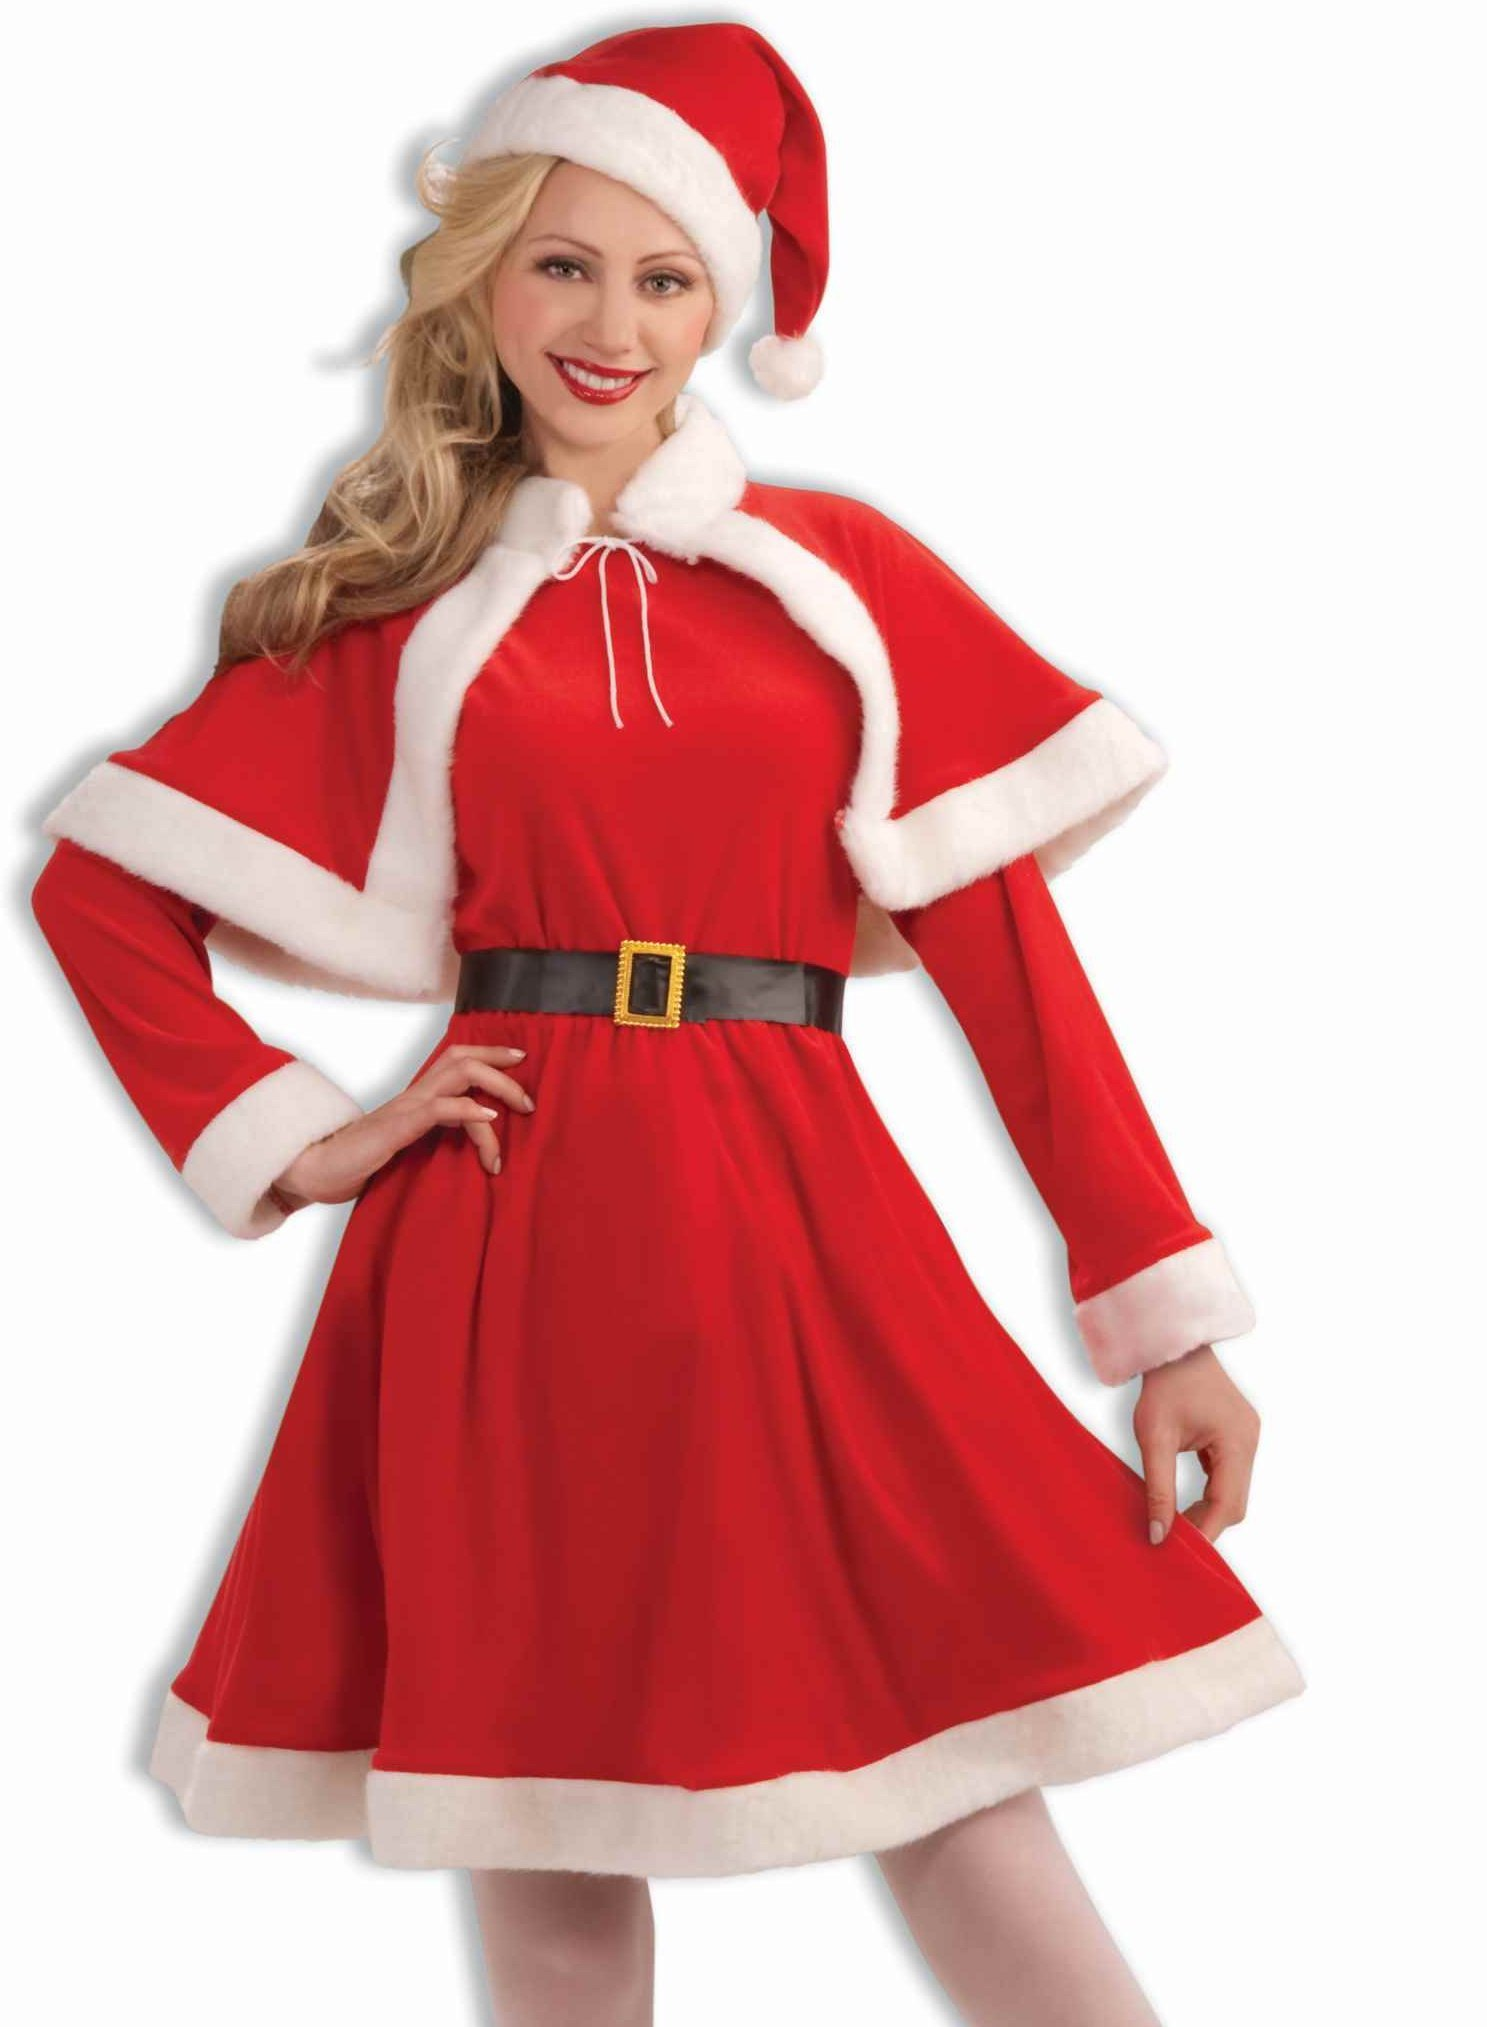 Forum Womens Mrs Santa Clause Outfit Adult Christmas Costume at Sears.com